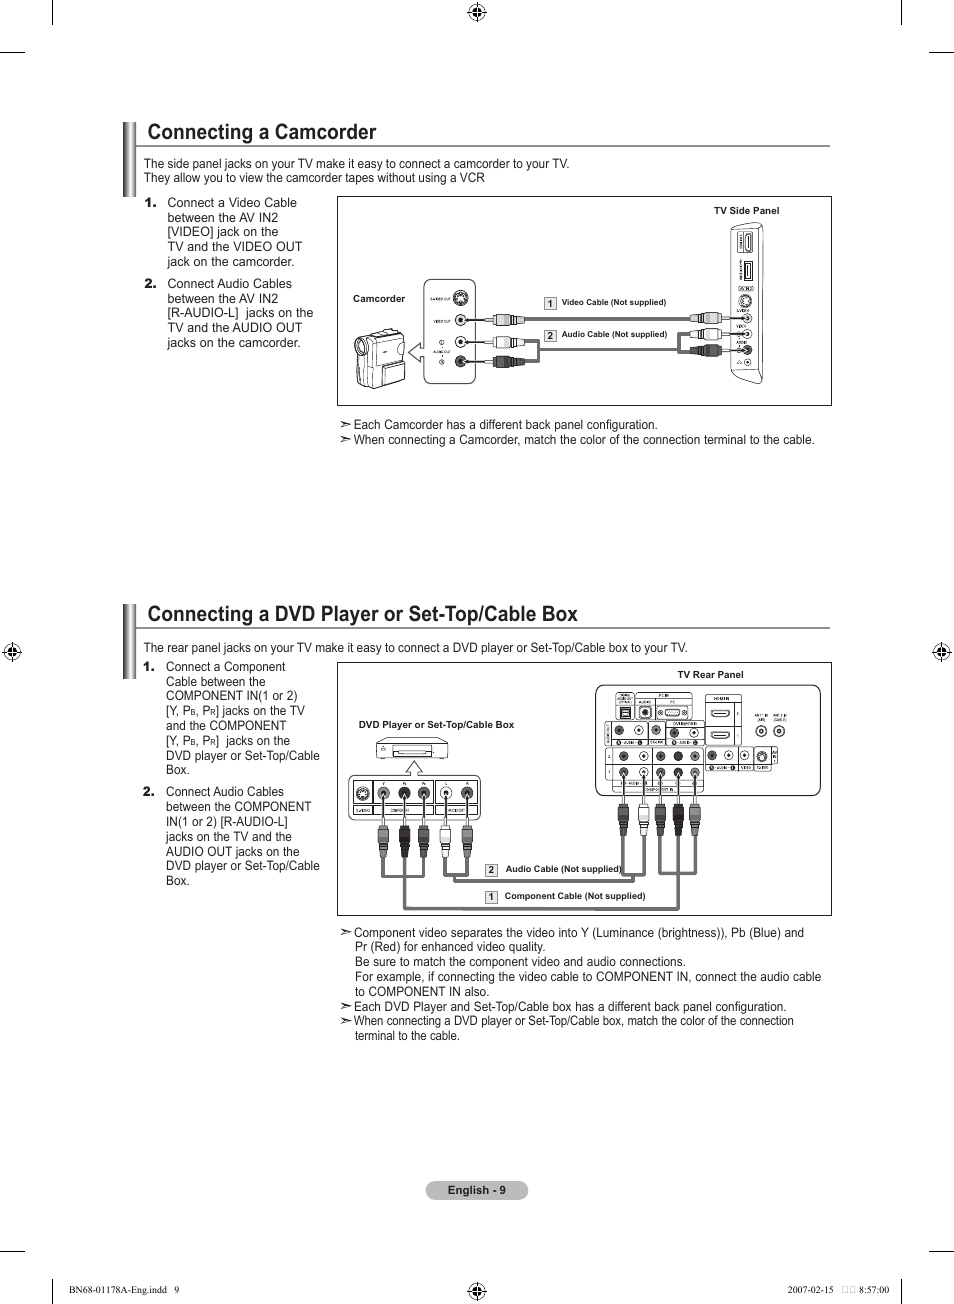 Connecting A Camcorder Dvd Player Or Set Top Cable Box Hookup Video Diagrams To Tv